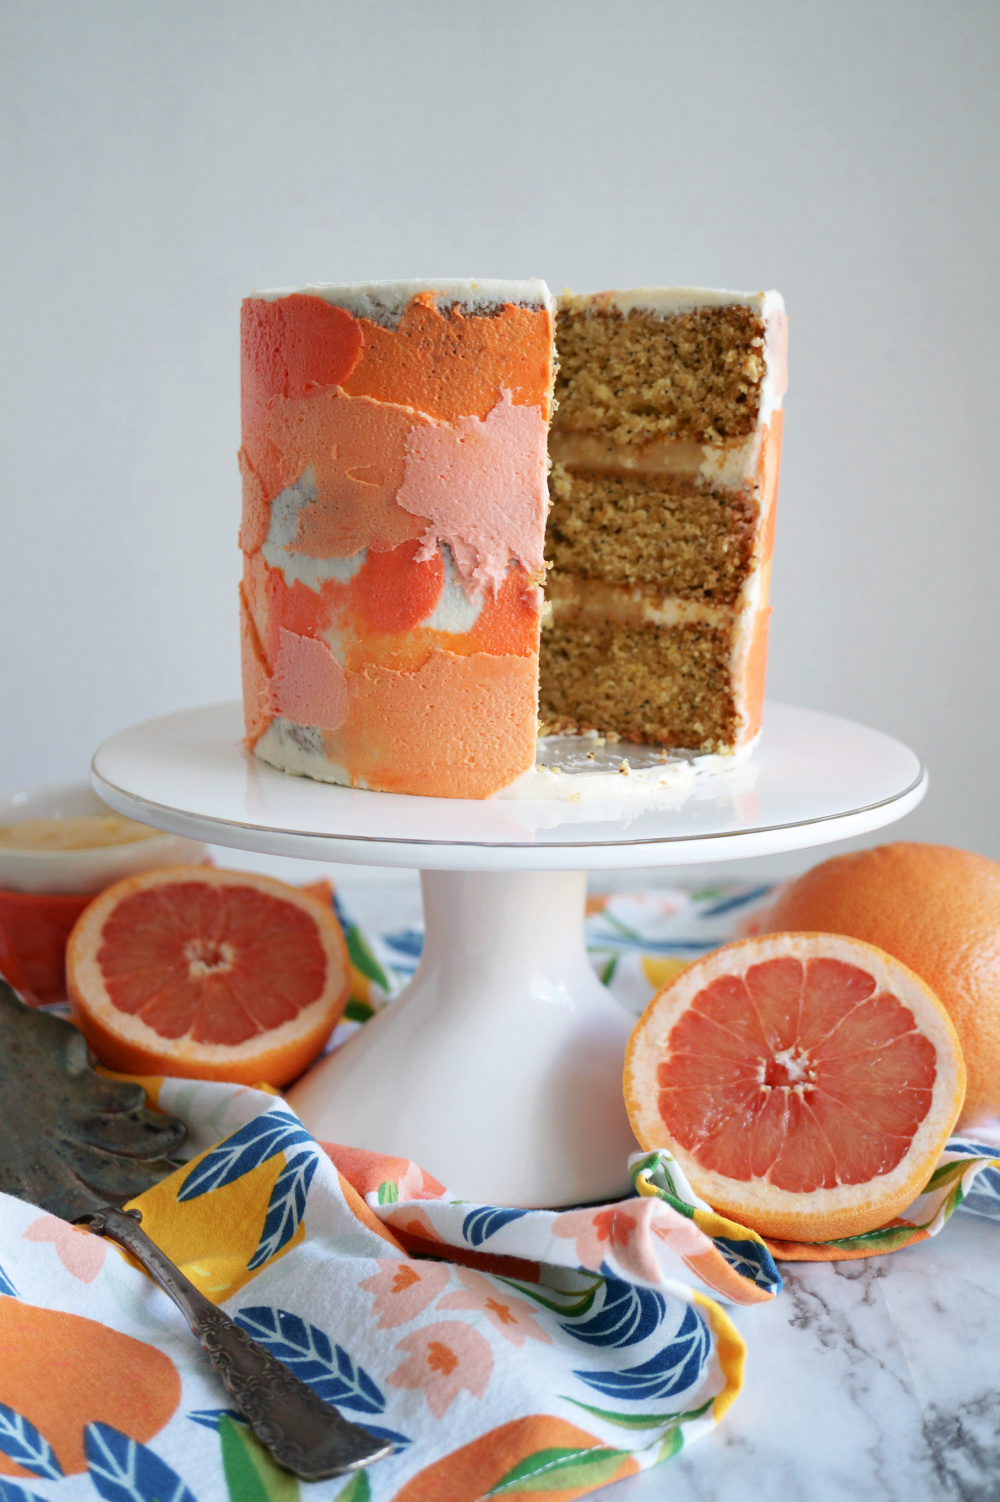 grapefruit cake with slice cut out